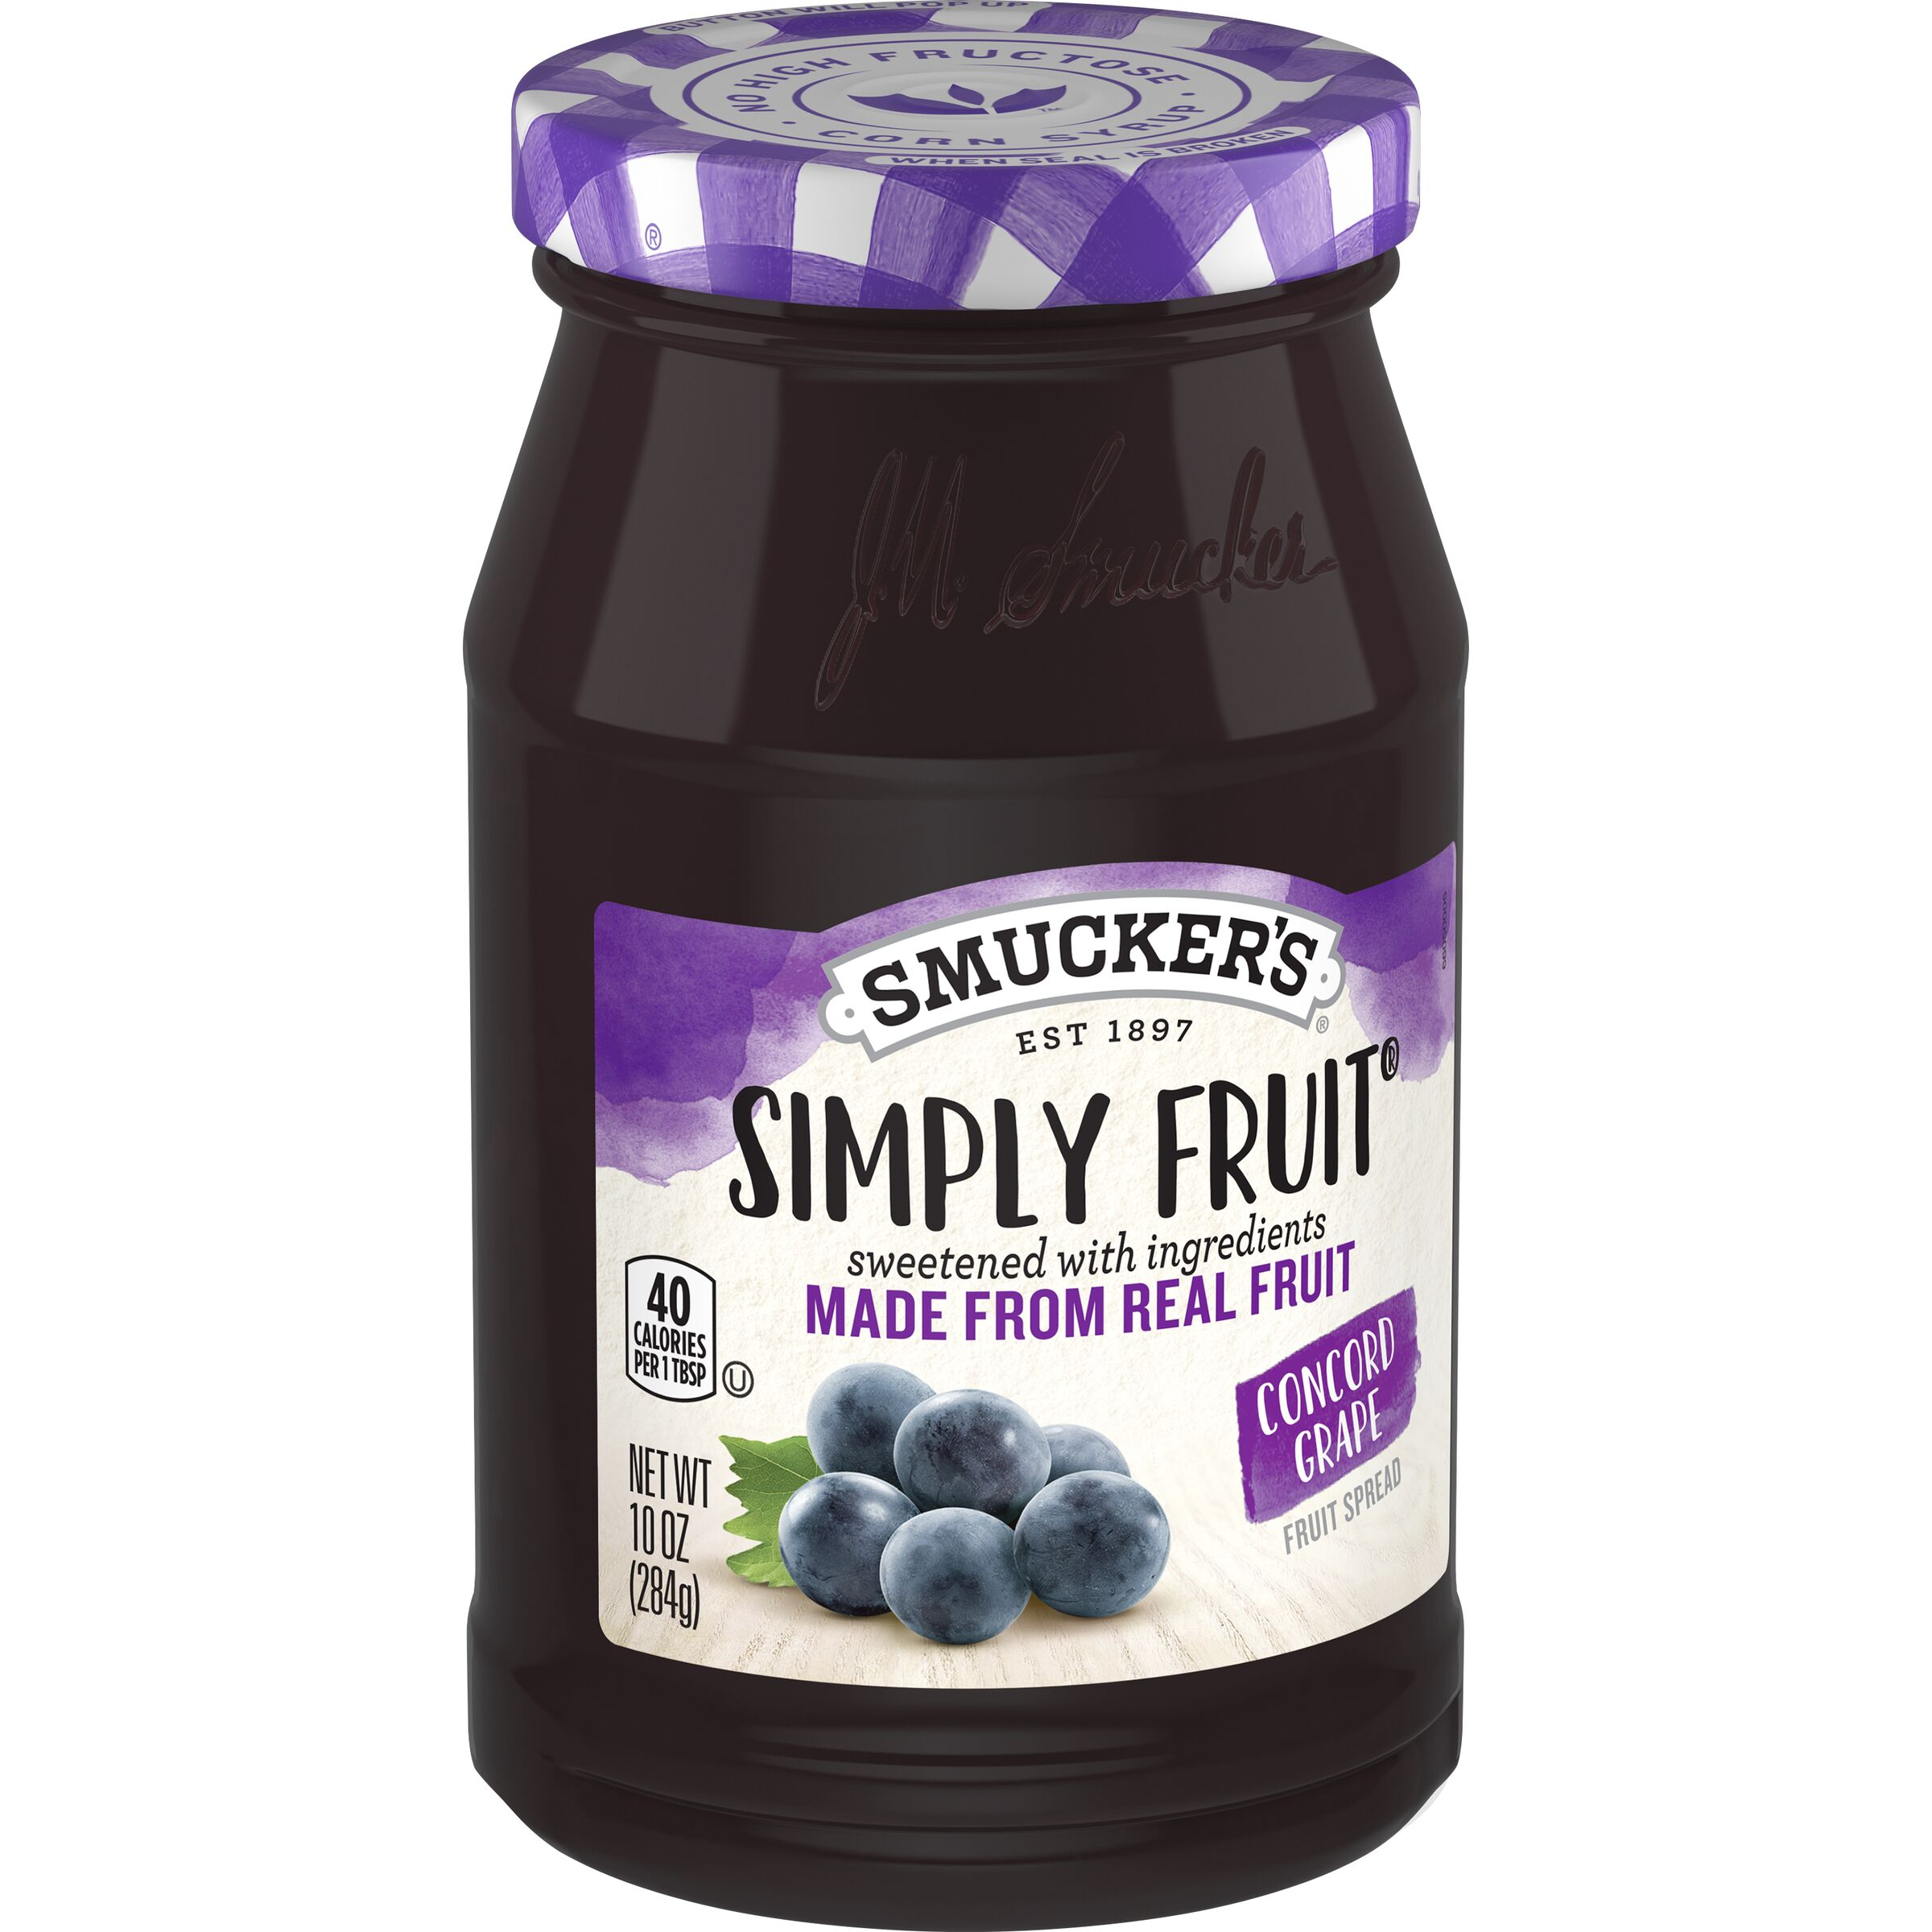 Smucker's Simply Fruit Concord Grape Spreadable Fruit